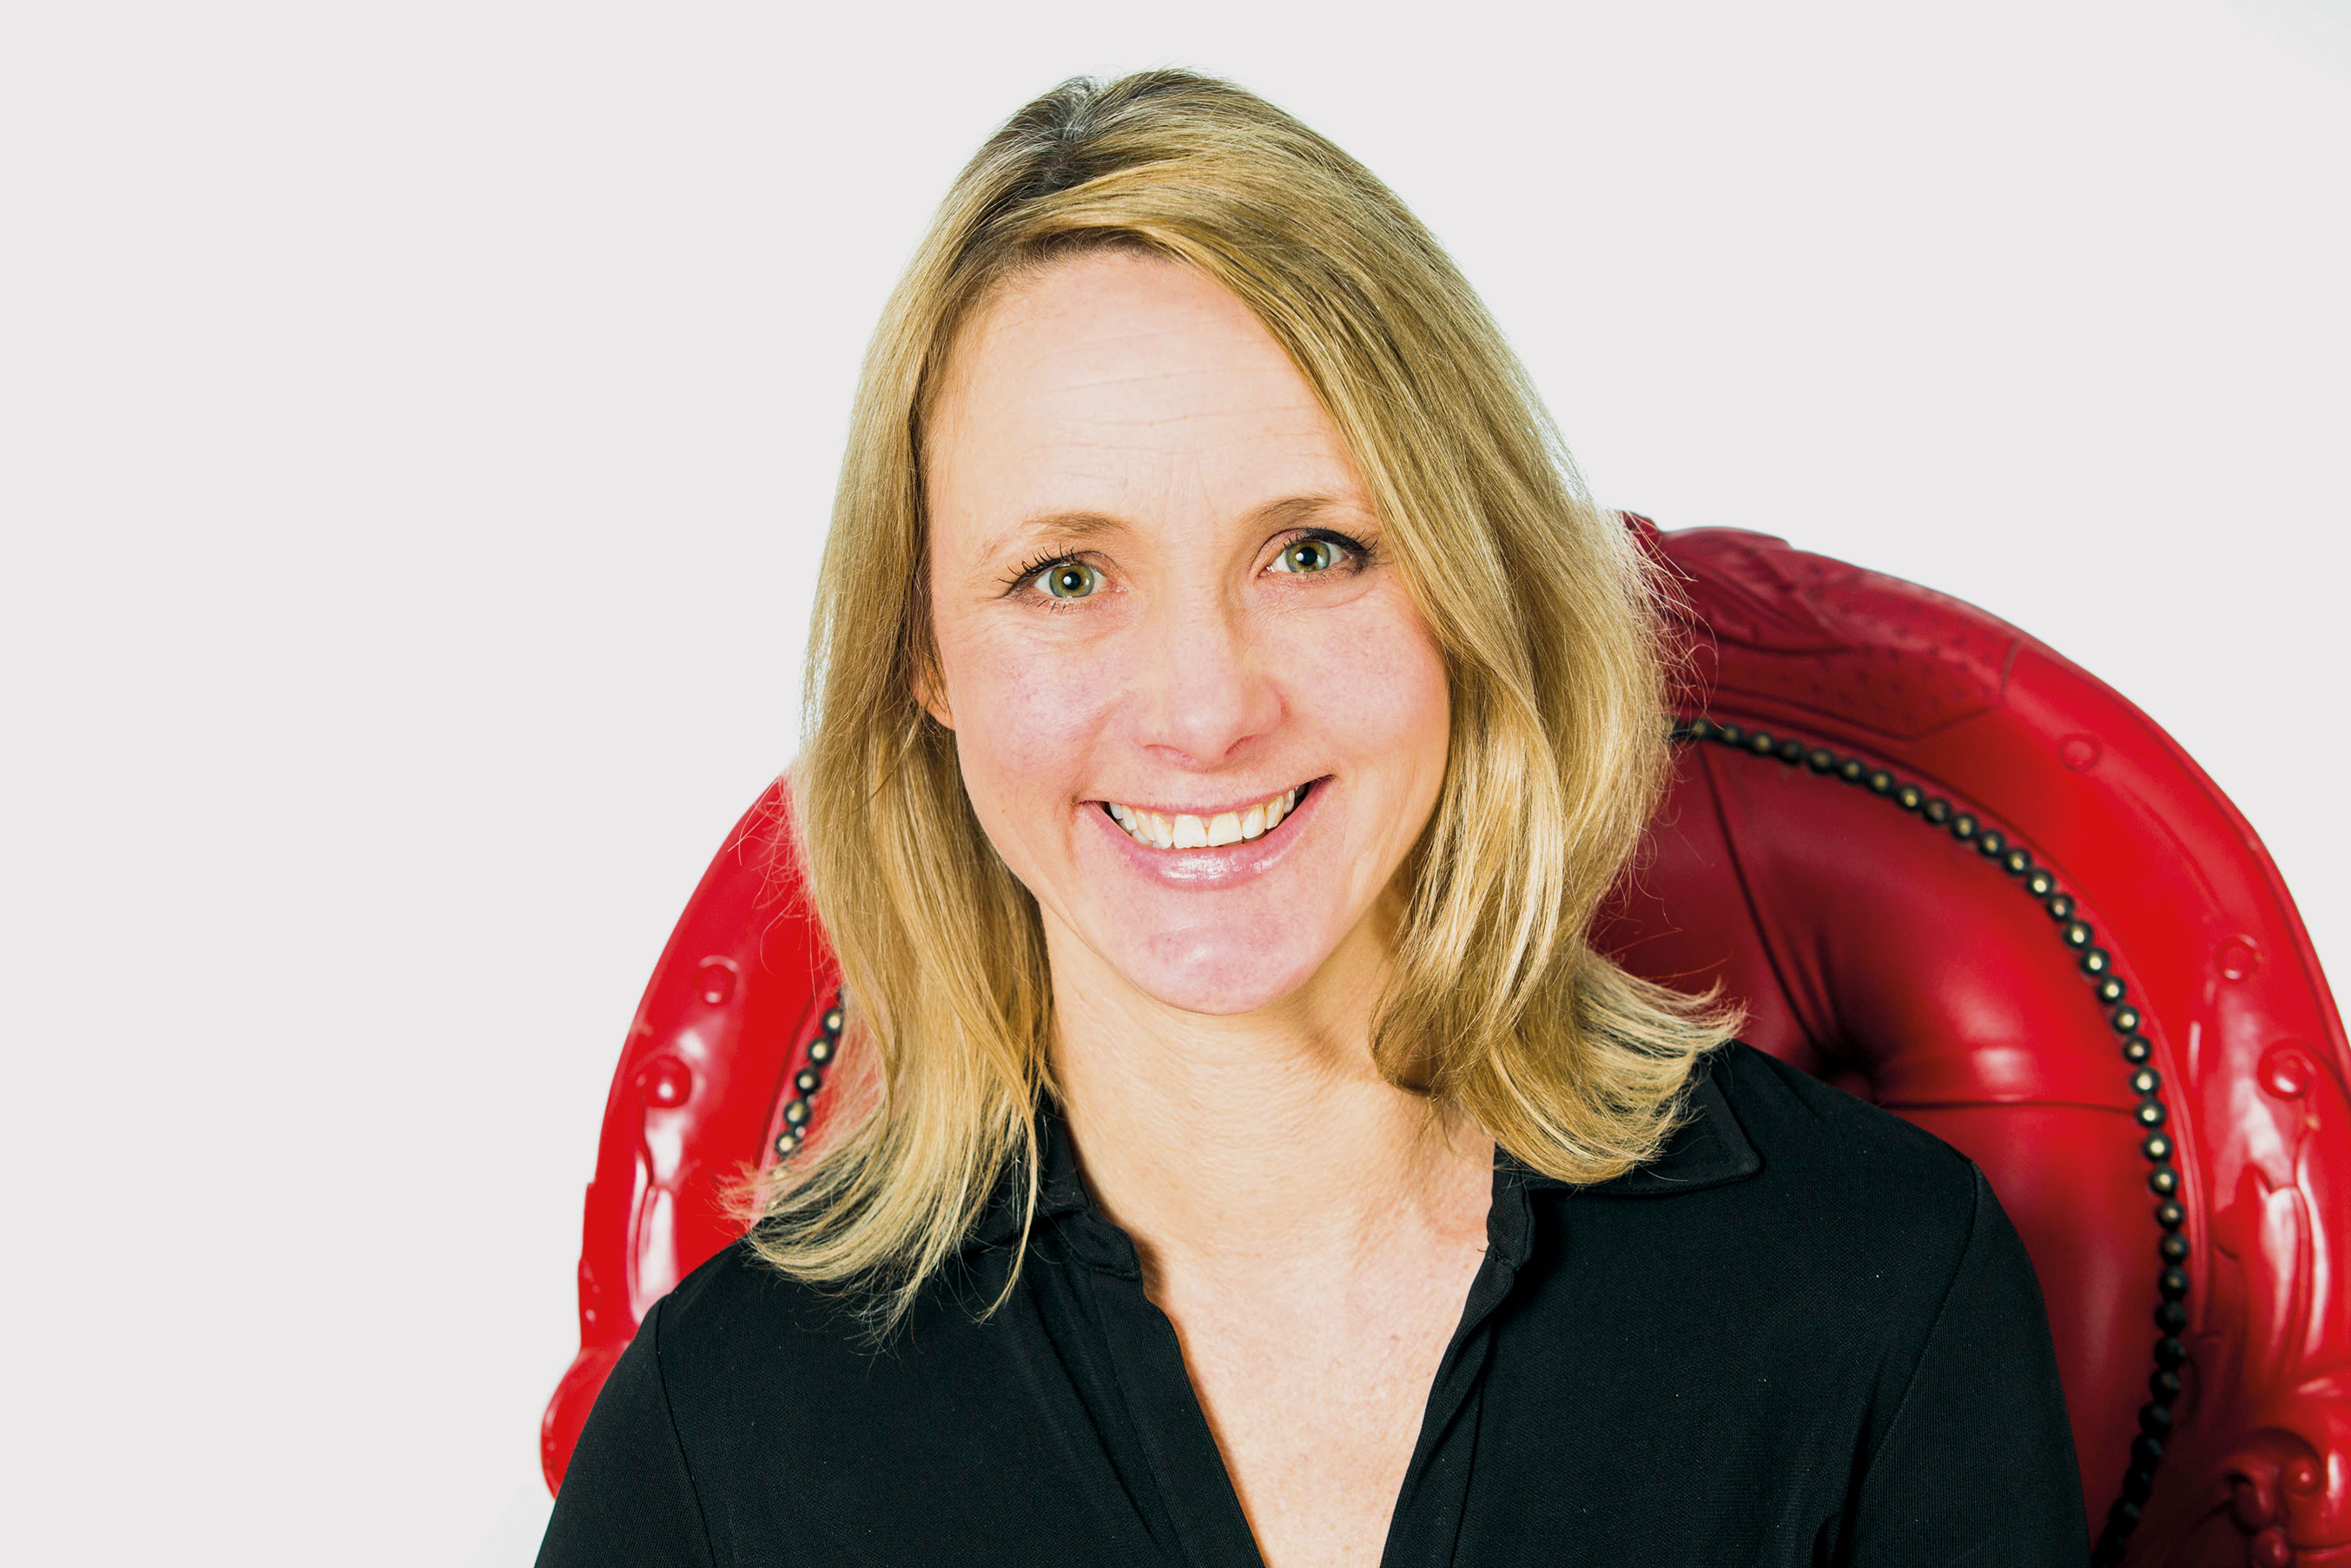 8. Harriet Perry, General Manager, Programmatic, Omnicom Media Group